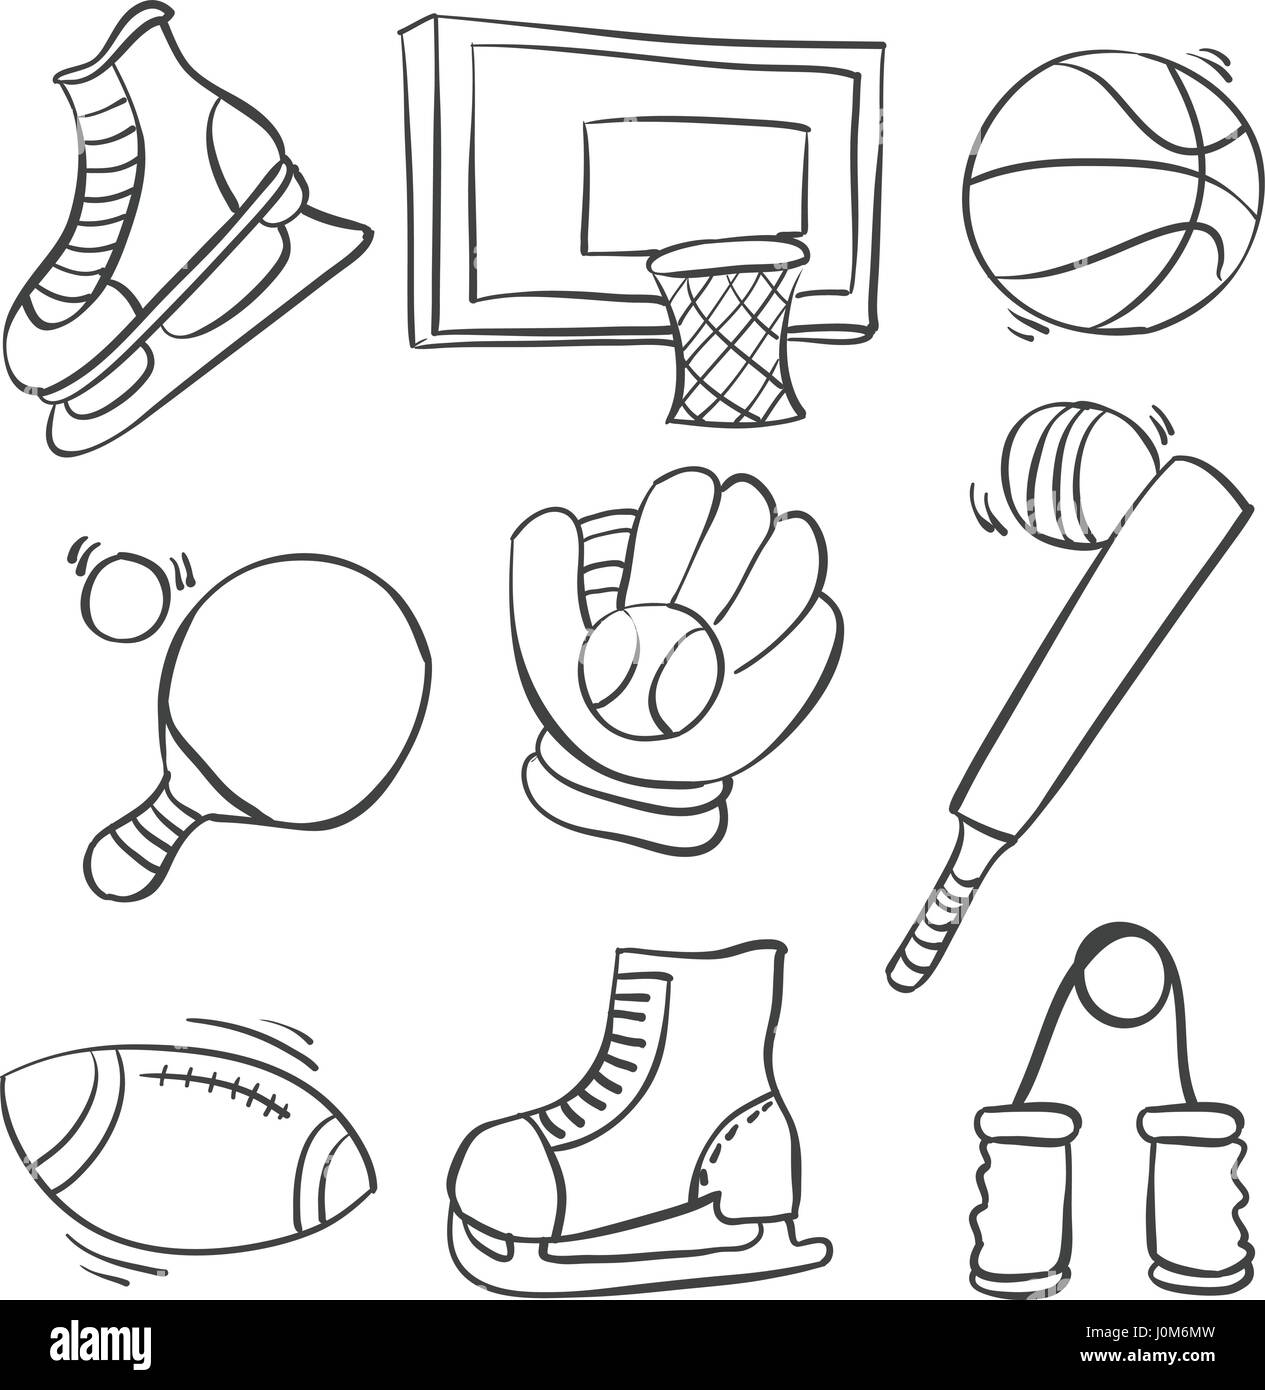 Doodle of sport equipment various collection - Stock Image